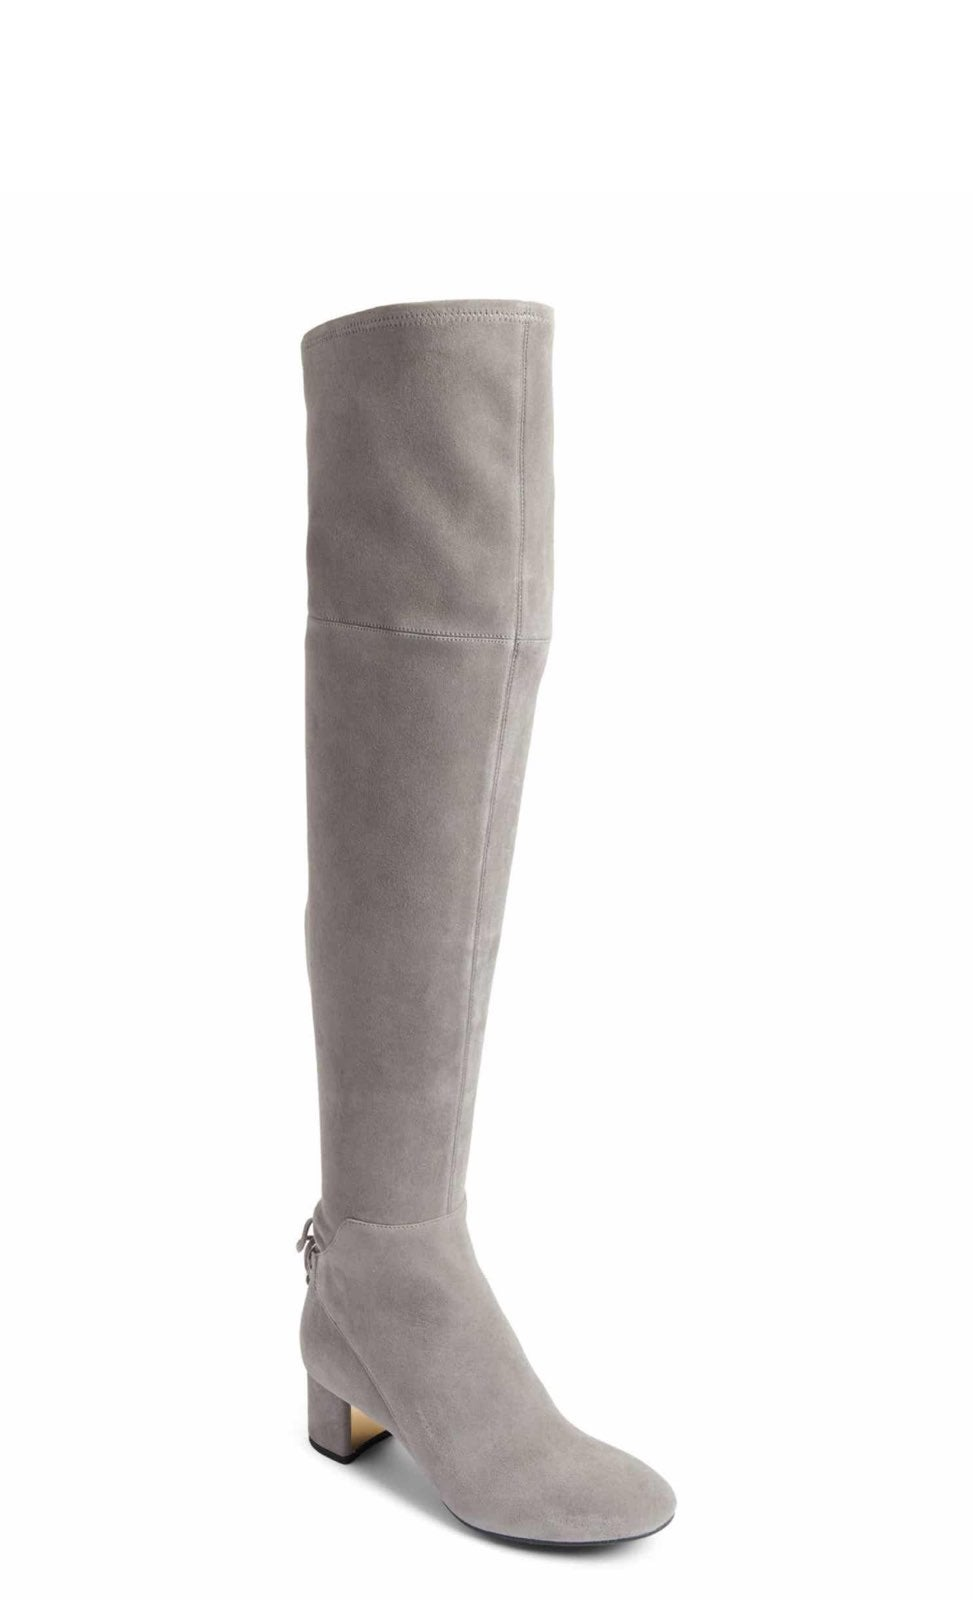 NWOB Tory Burch Over the Knee Grey Boot